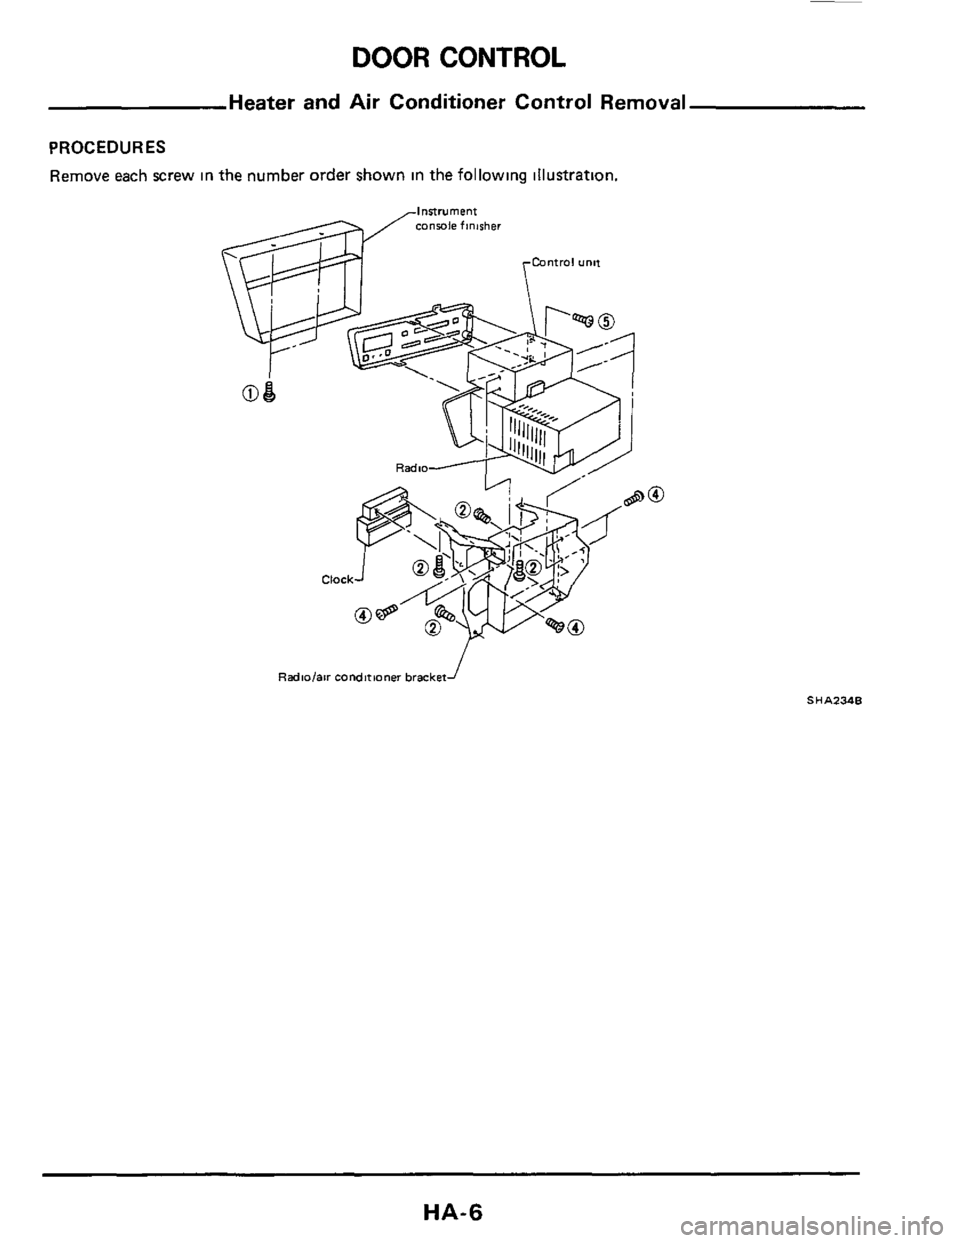 NISSAN 300ZX 1984 Z31 Heather And Air Conditioner Workshop Manual, Page 6